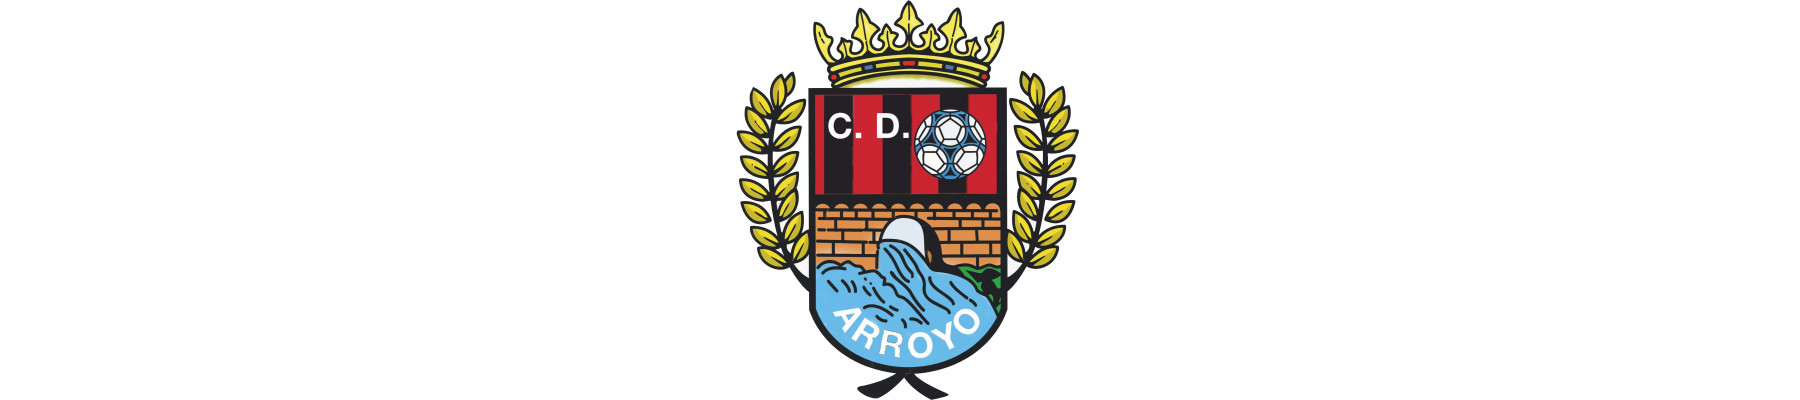 Club Deportivo Arroyo